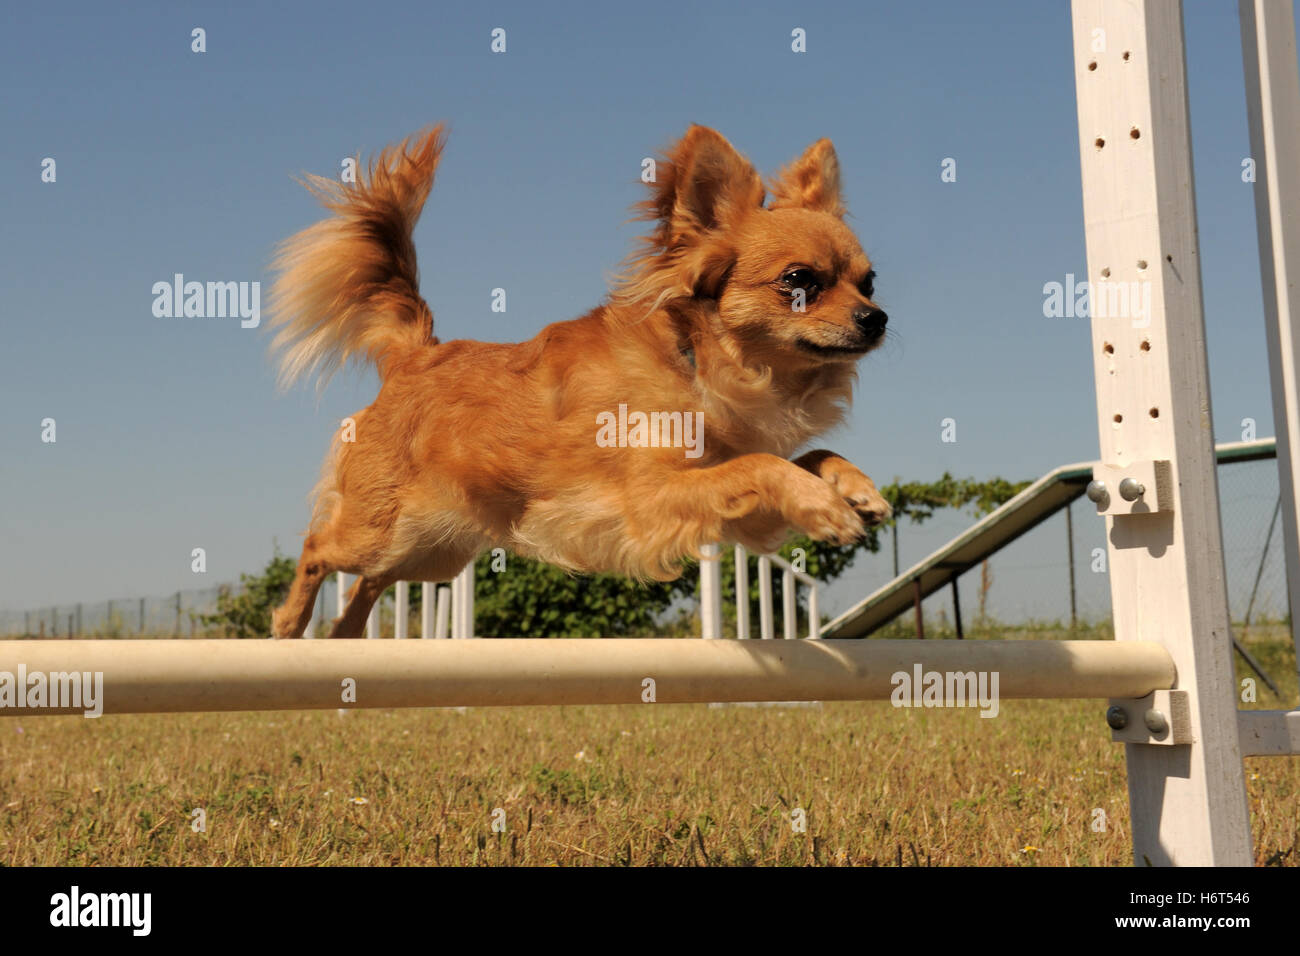 sport sports dog spring bouncing bounces hop skipping frisks jumping jump puppy agility motion postponement moving - Stock Image